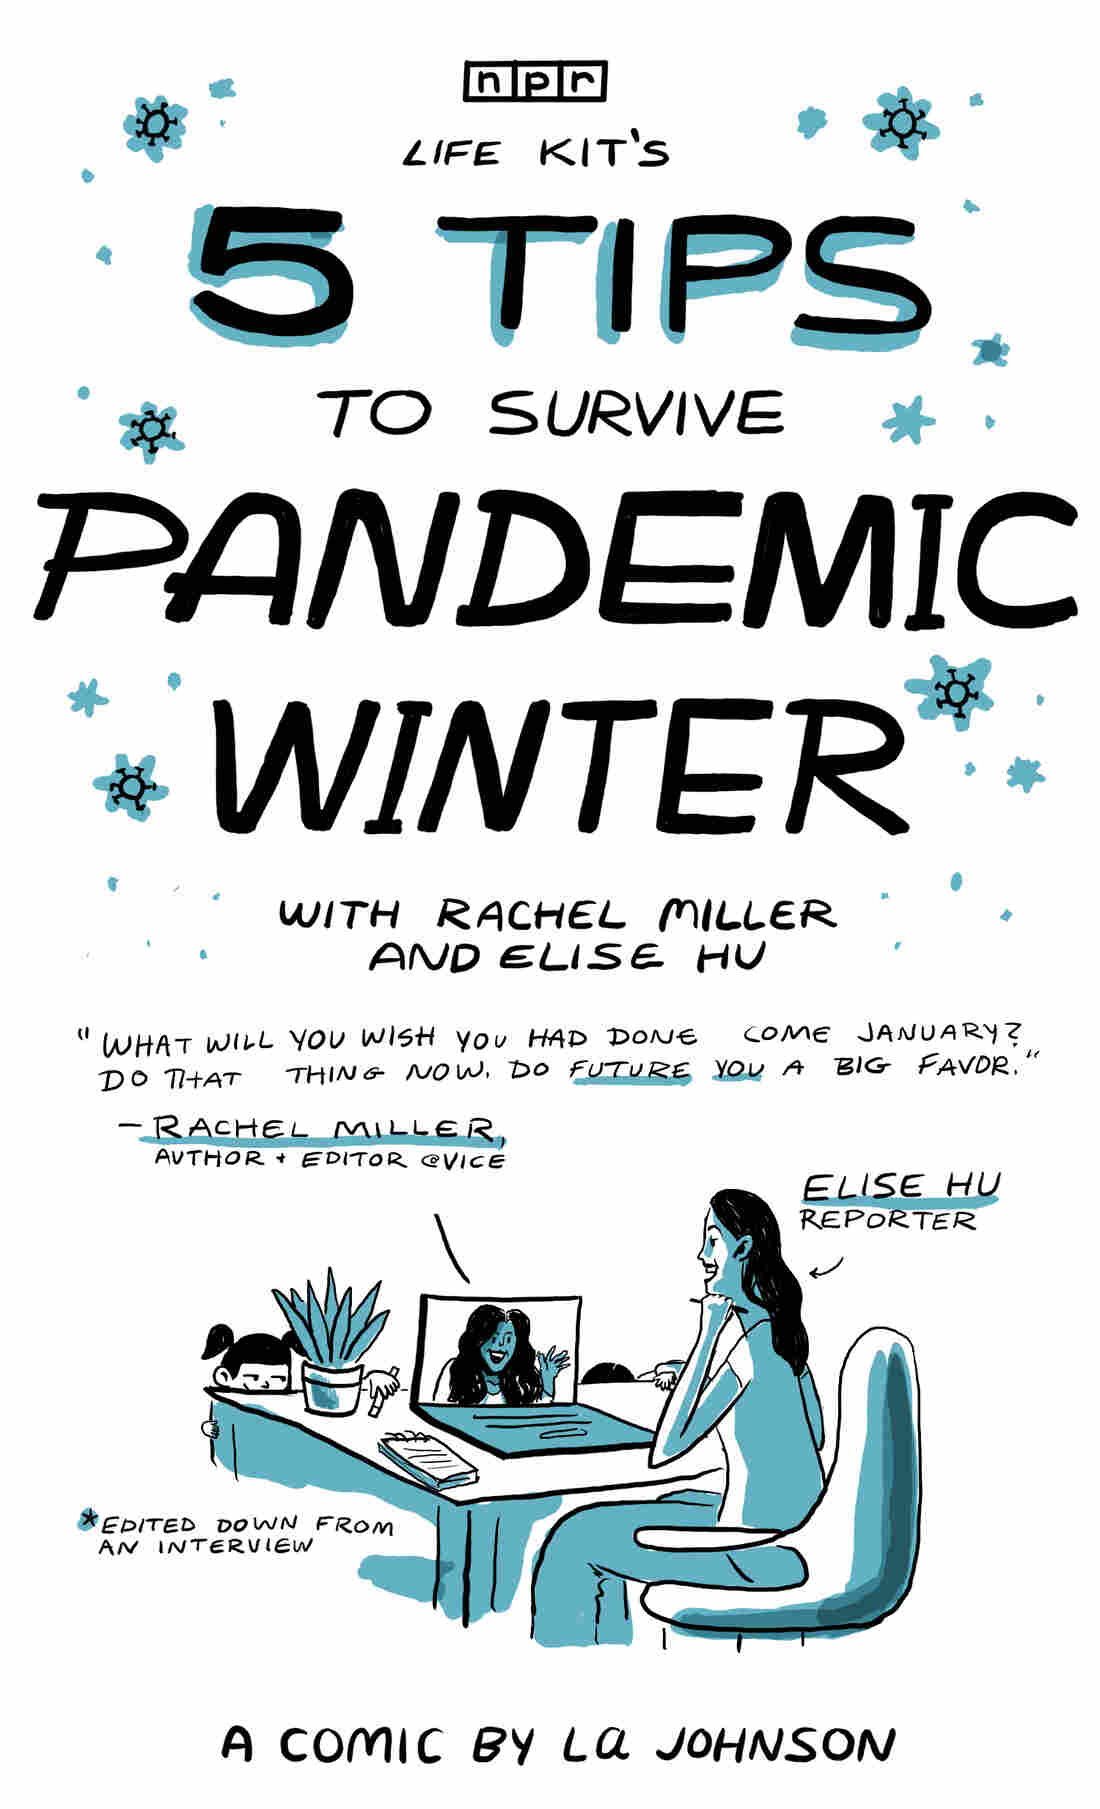 Life Kit's 5 Tips For Preparing For Pandemic Winter, from Rachel Miller and Elise Hu. Based on an interview between reporter Elise Hu and VICE journalist and author Rachel Miller.